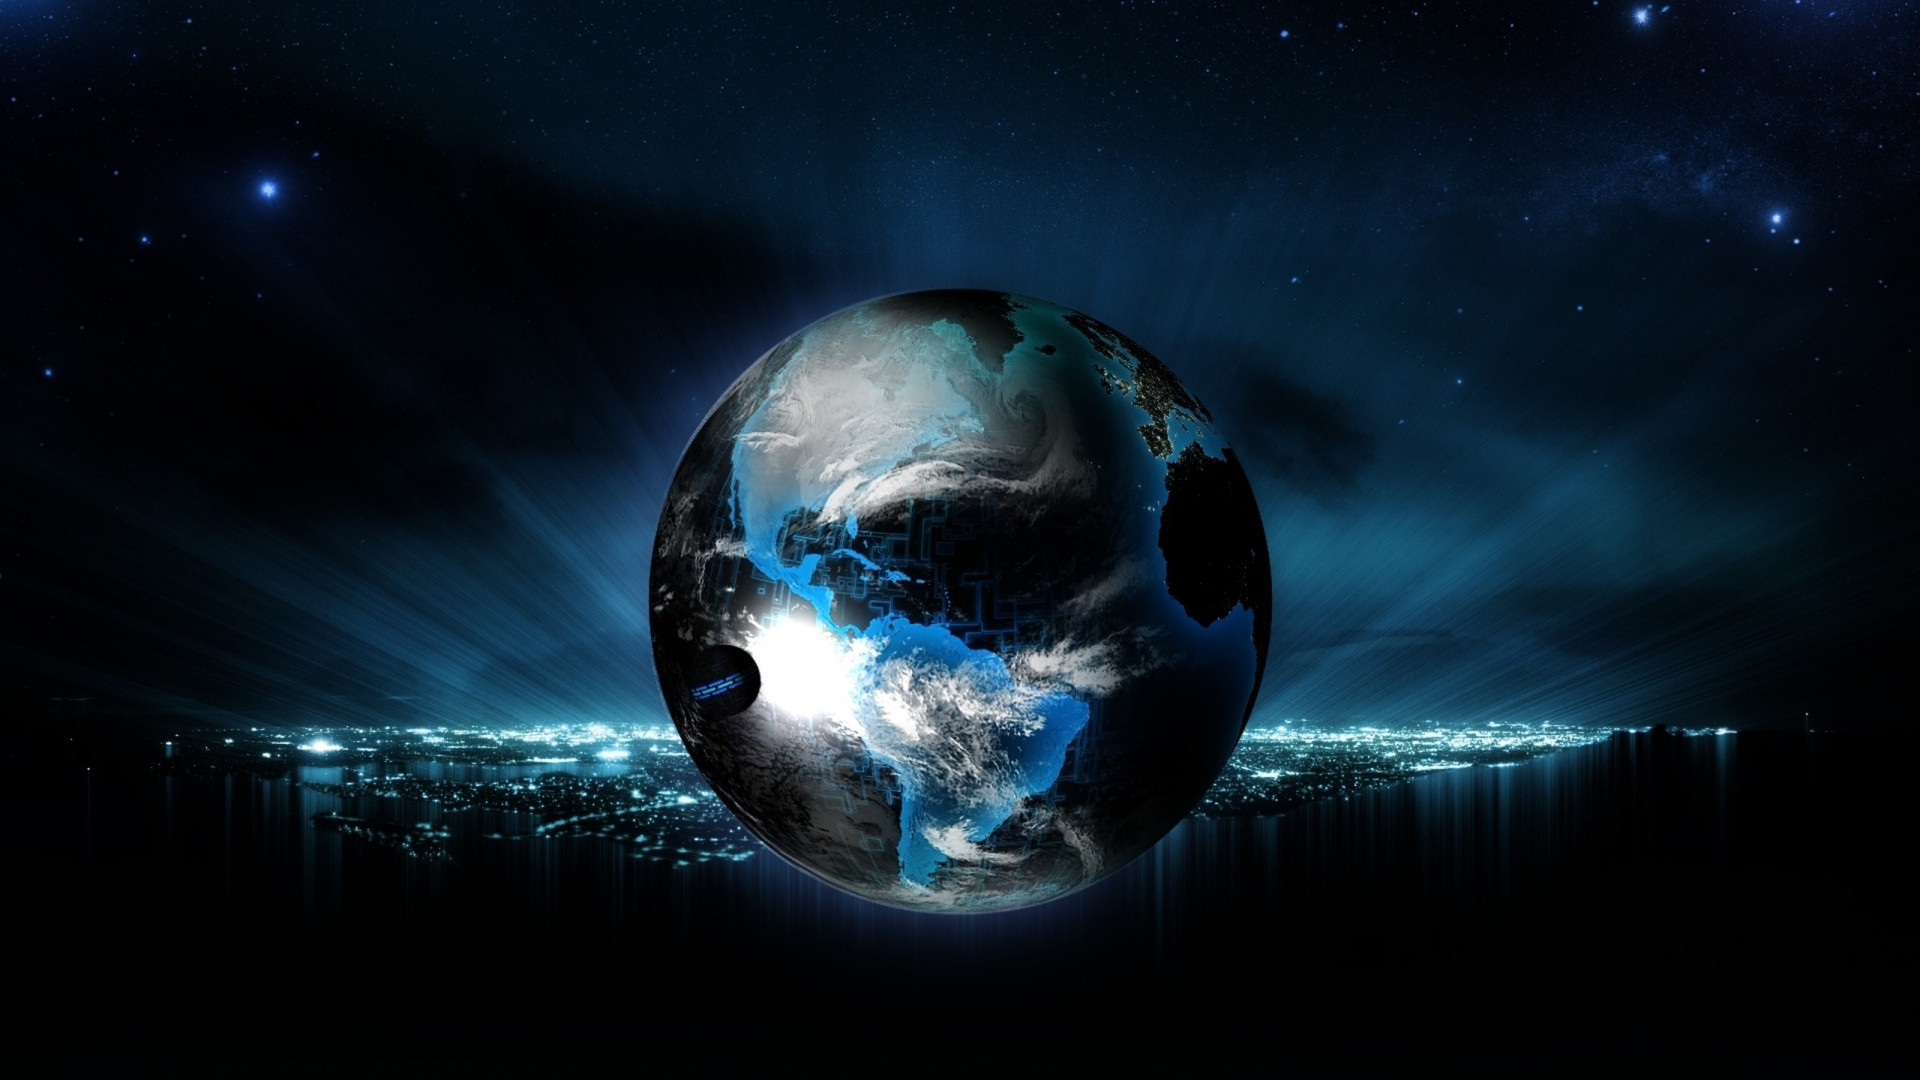 Earth floating over the city Digital Art HD desktop wallpaper, Planet  wallpaper, City wallpaper, Earth wallpaper – Digital Art no.